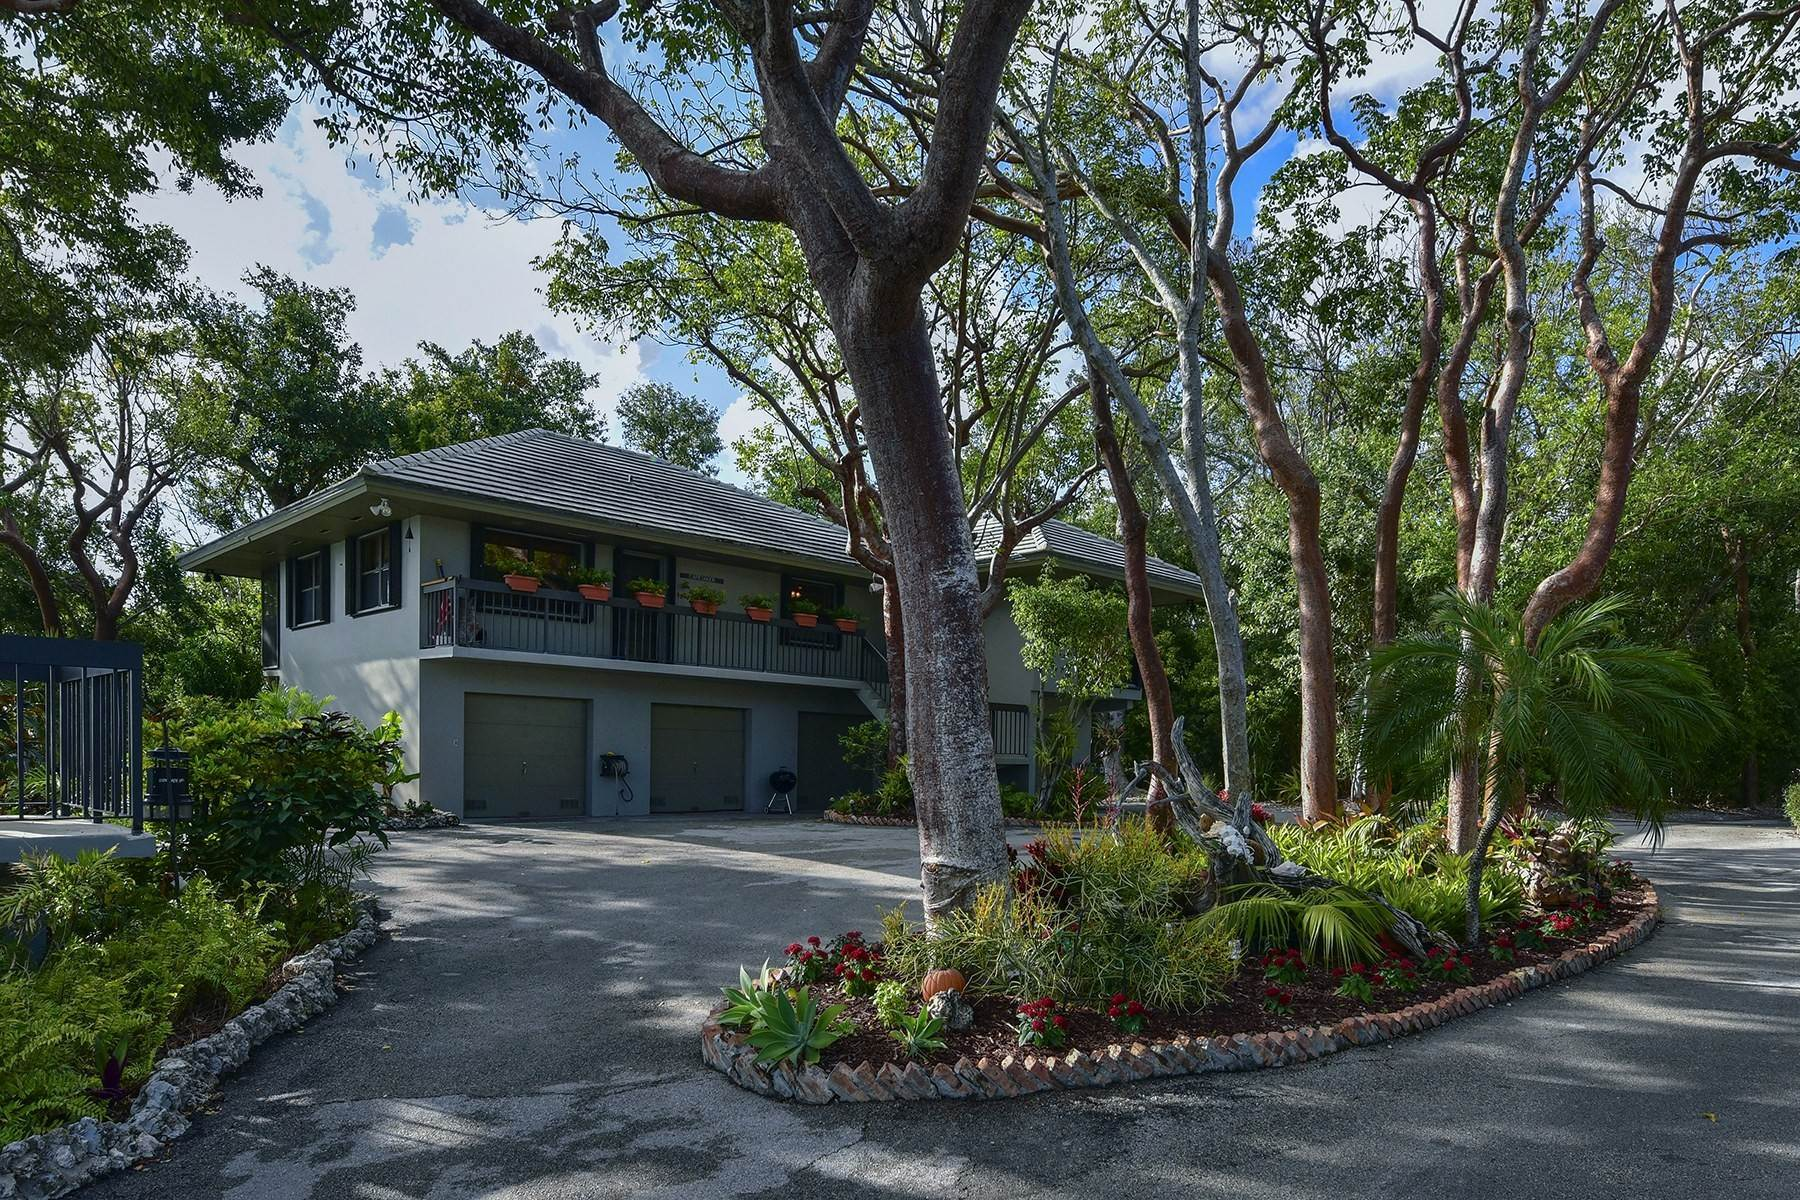 21. Property for Sale at Pumpkin Key - Private Island, Key Largo, FL Key Largo, Florida 33037 United States